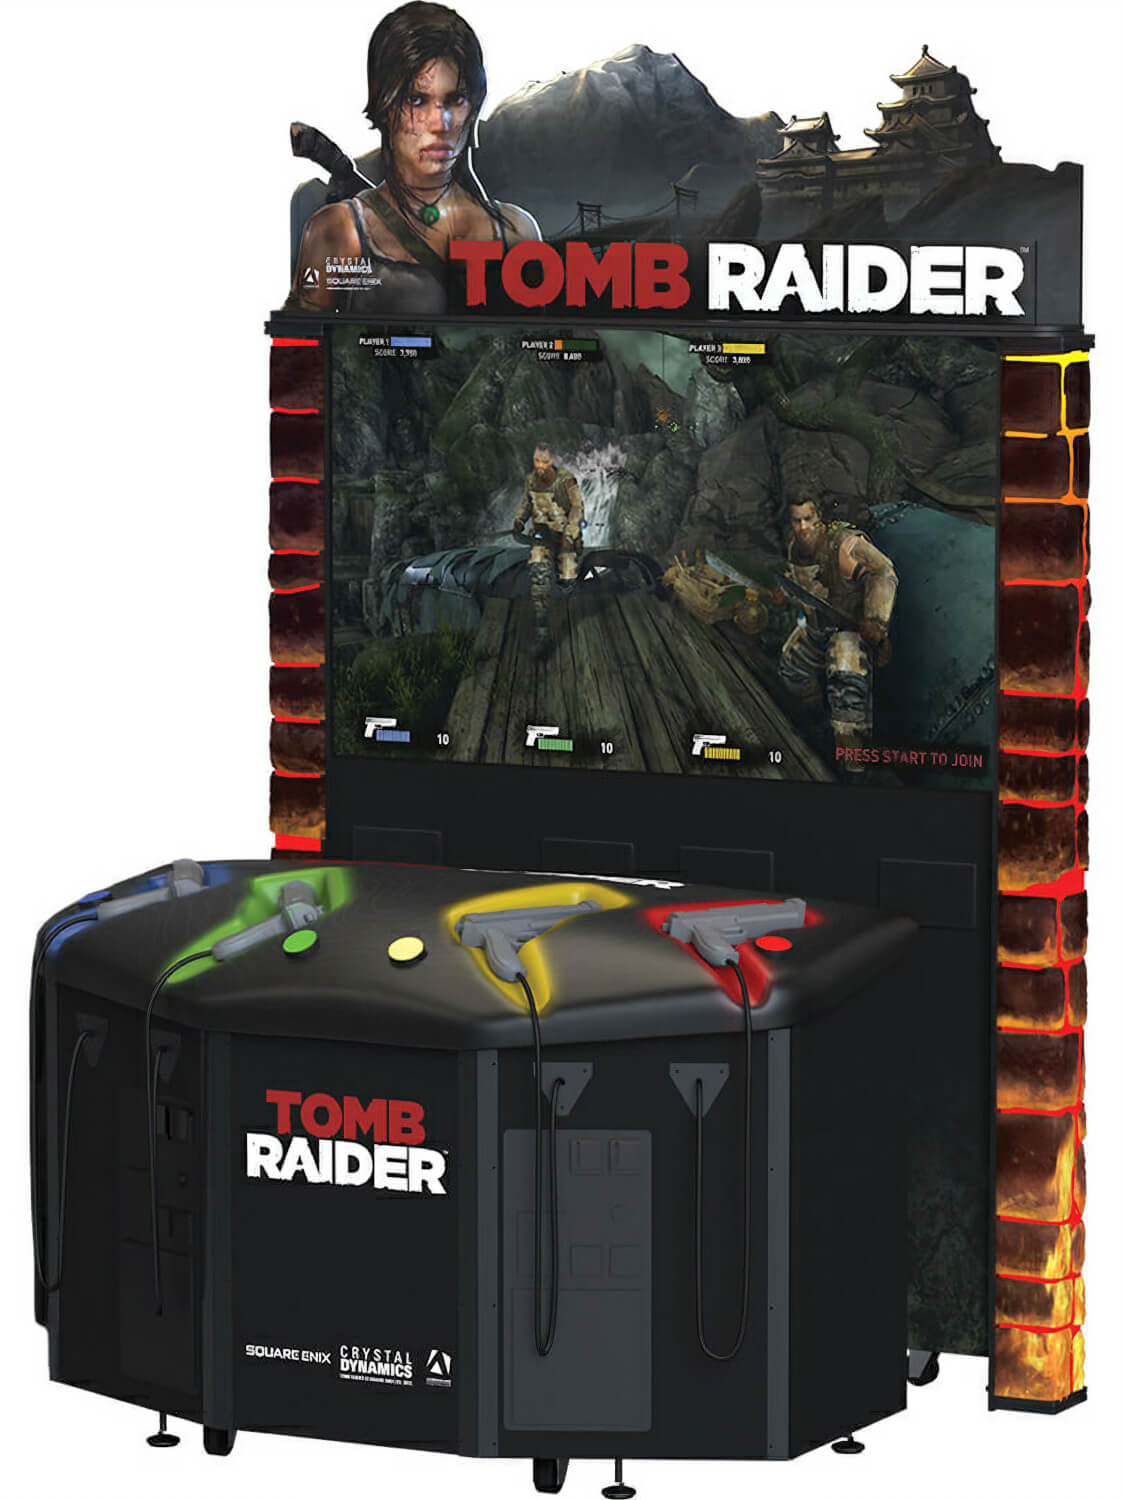 Neon Signs For Sale >> Tomb Raider Arcade Machine | Liberty Games